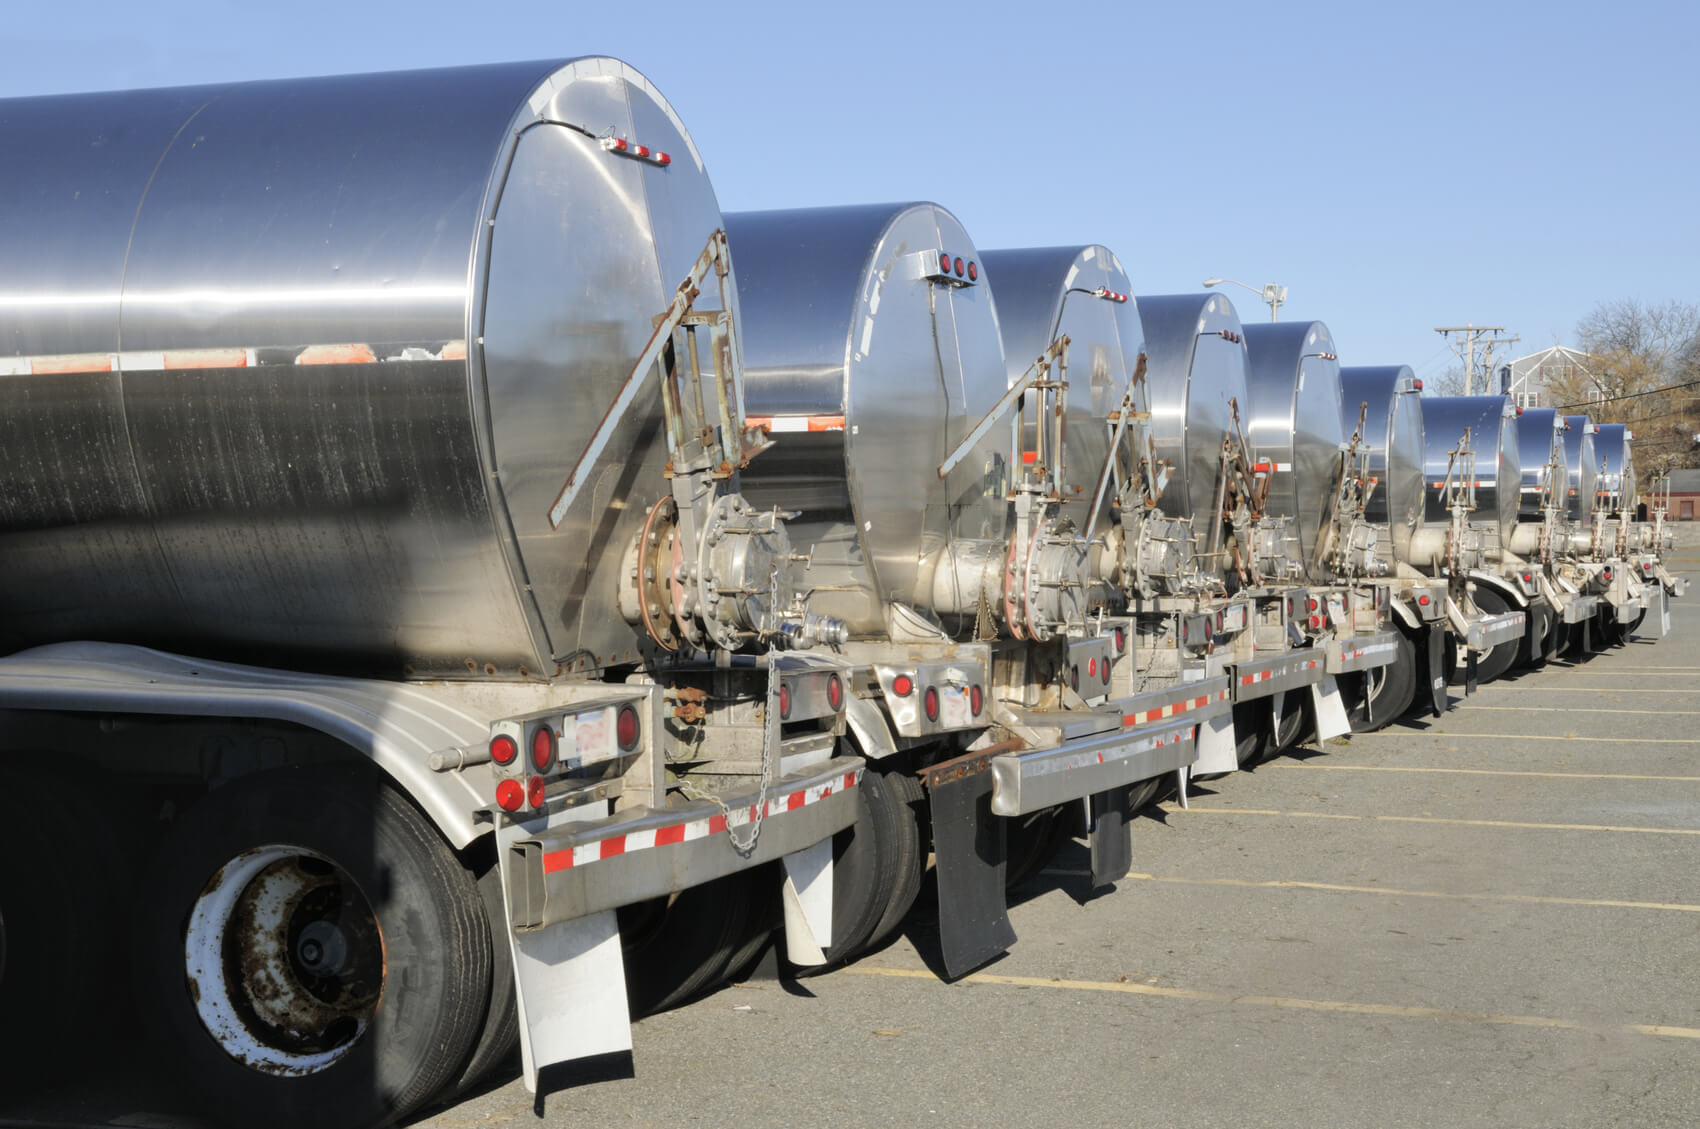 Stainless steel body tanker truck trailers designed for hauling fish lined up on a parking lot in Glaucester, MA.